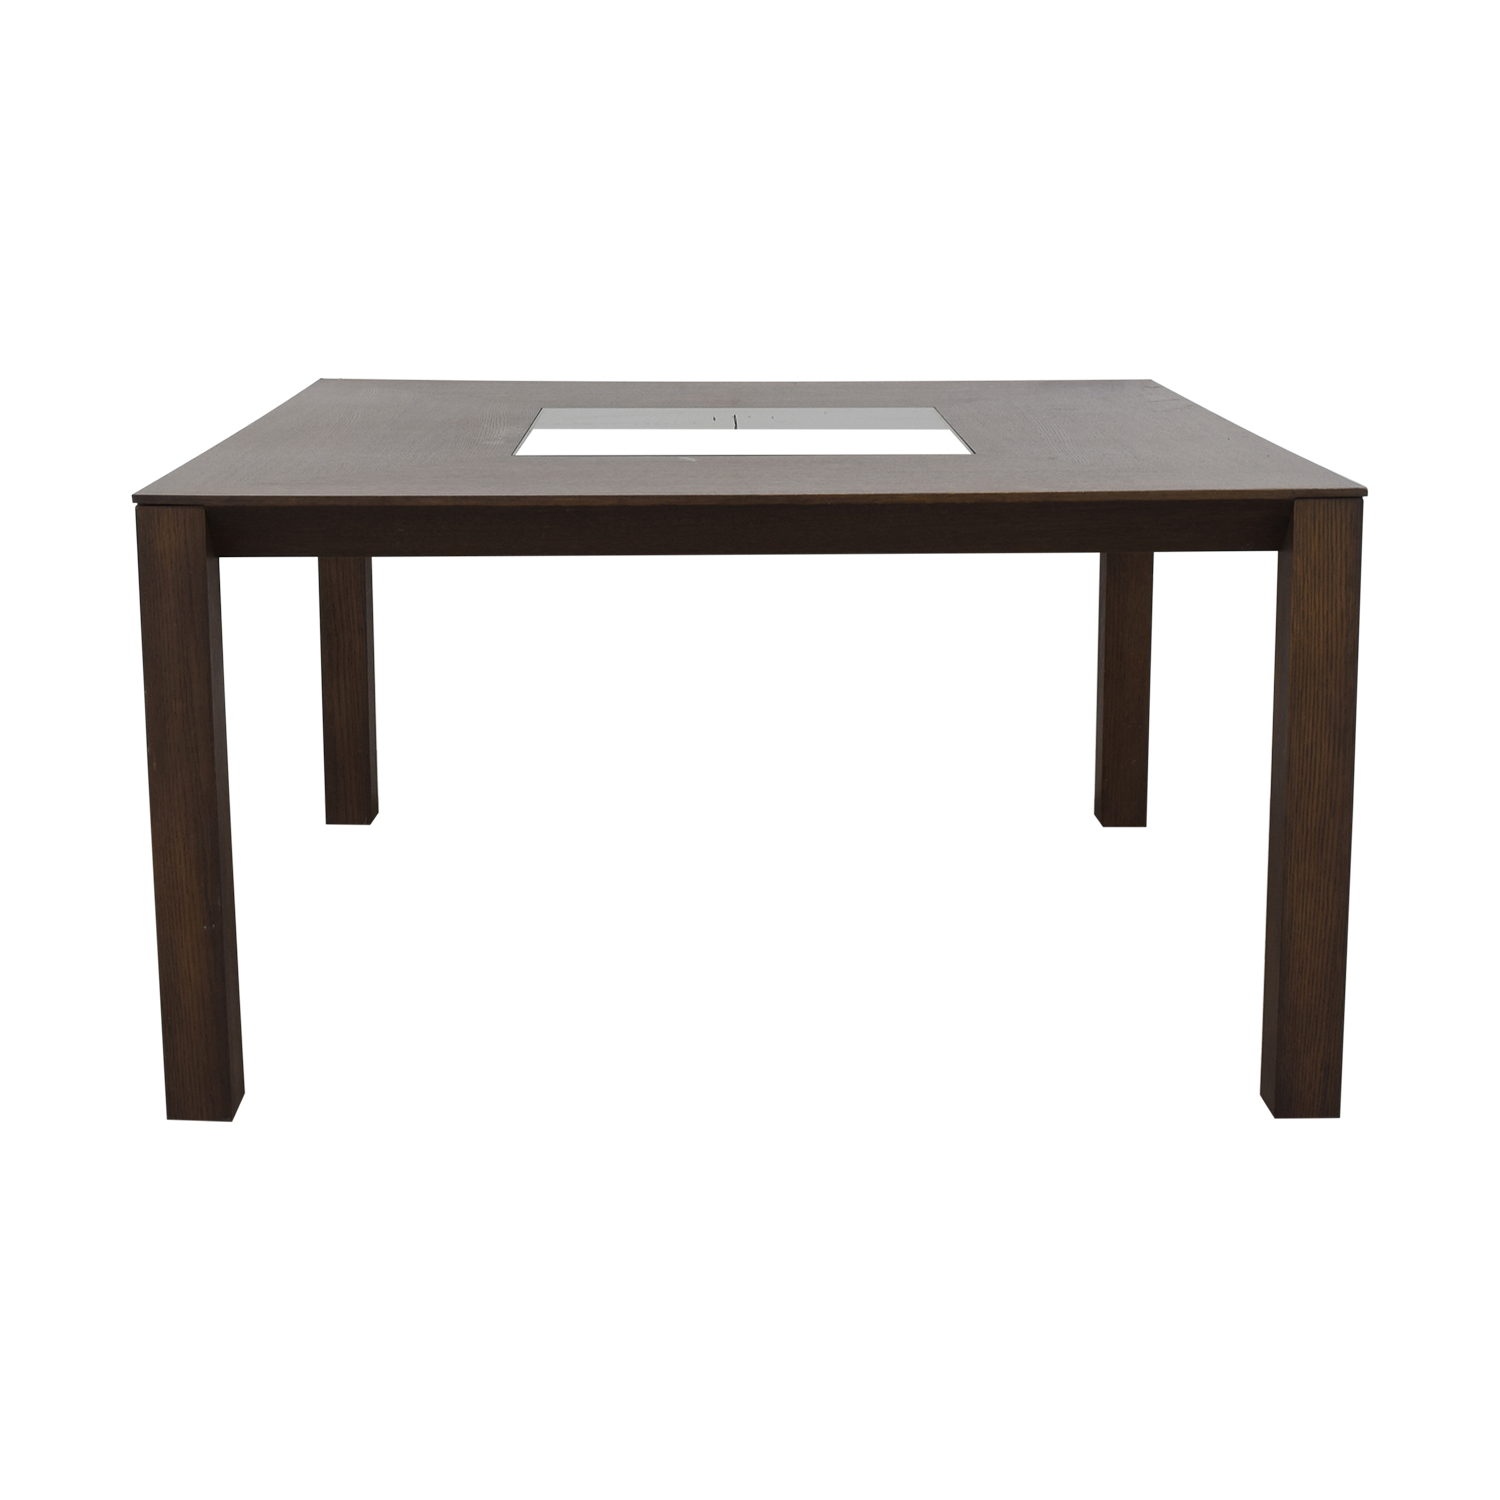 Planum Planum Furniture Square Dining Table with Glass Inlay nj